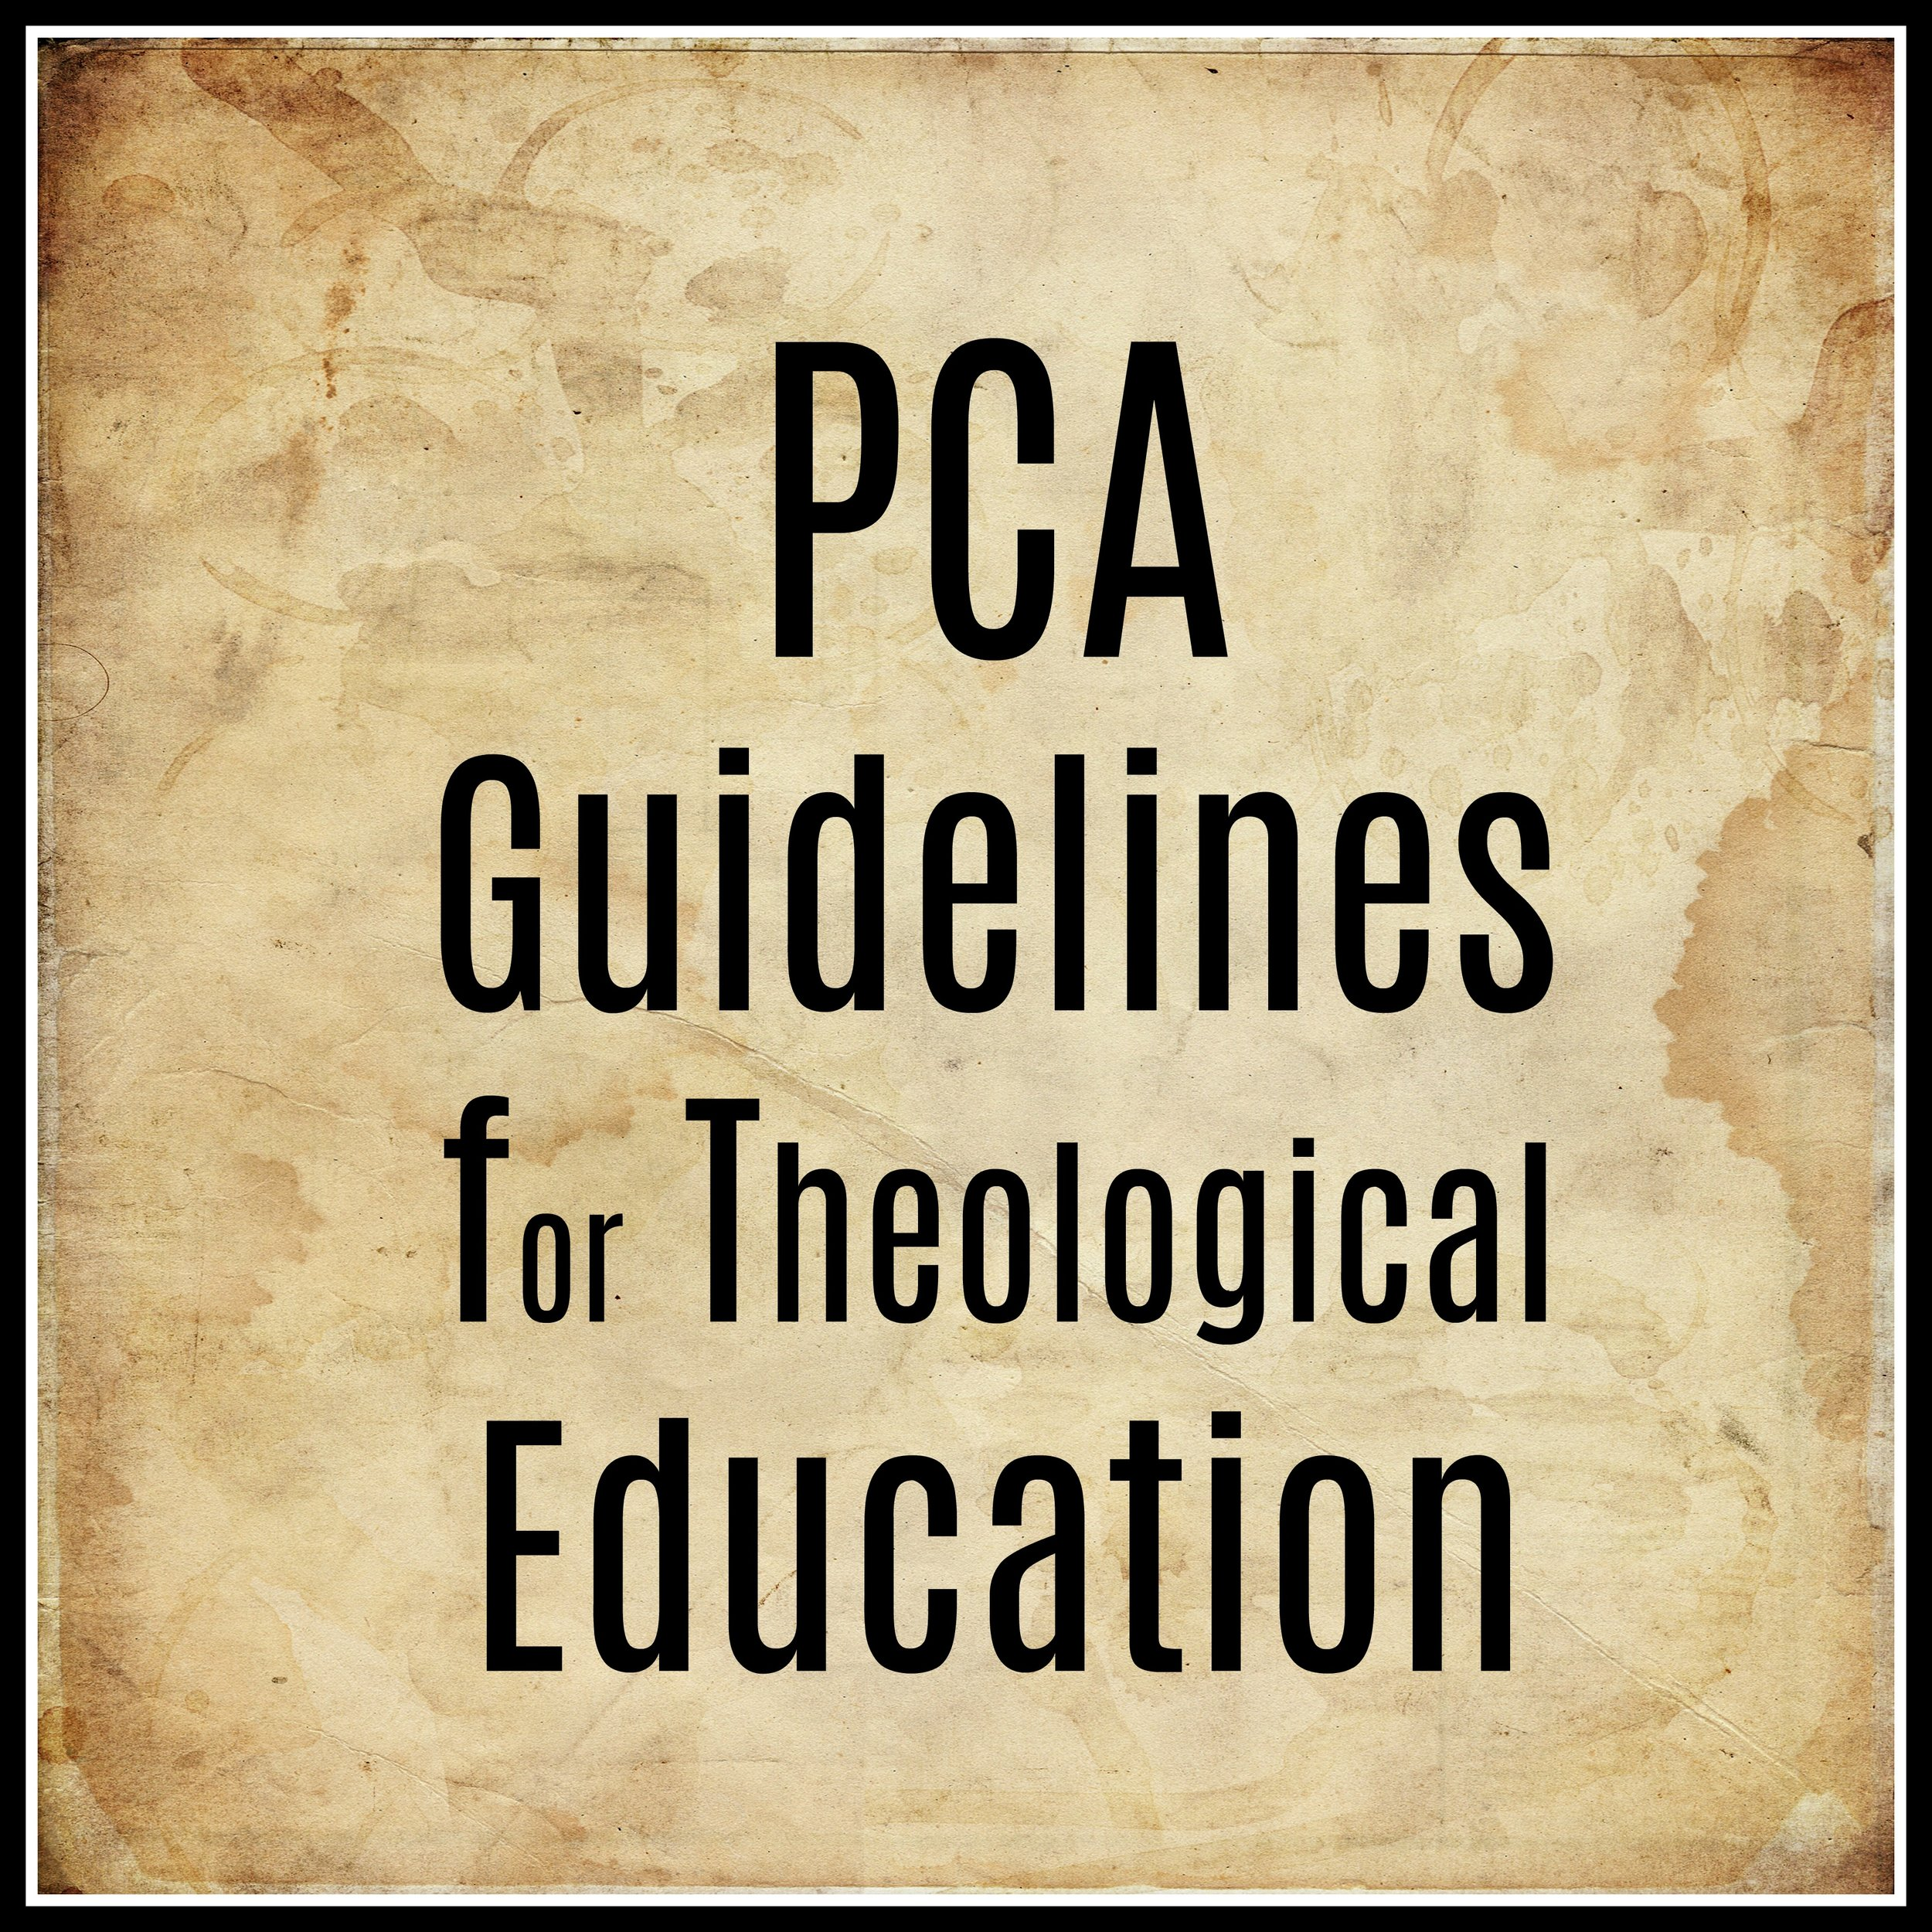 PCA Guidelines for Theological Education.jpg